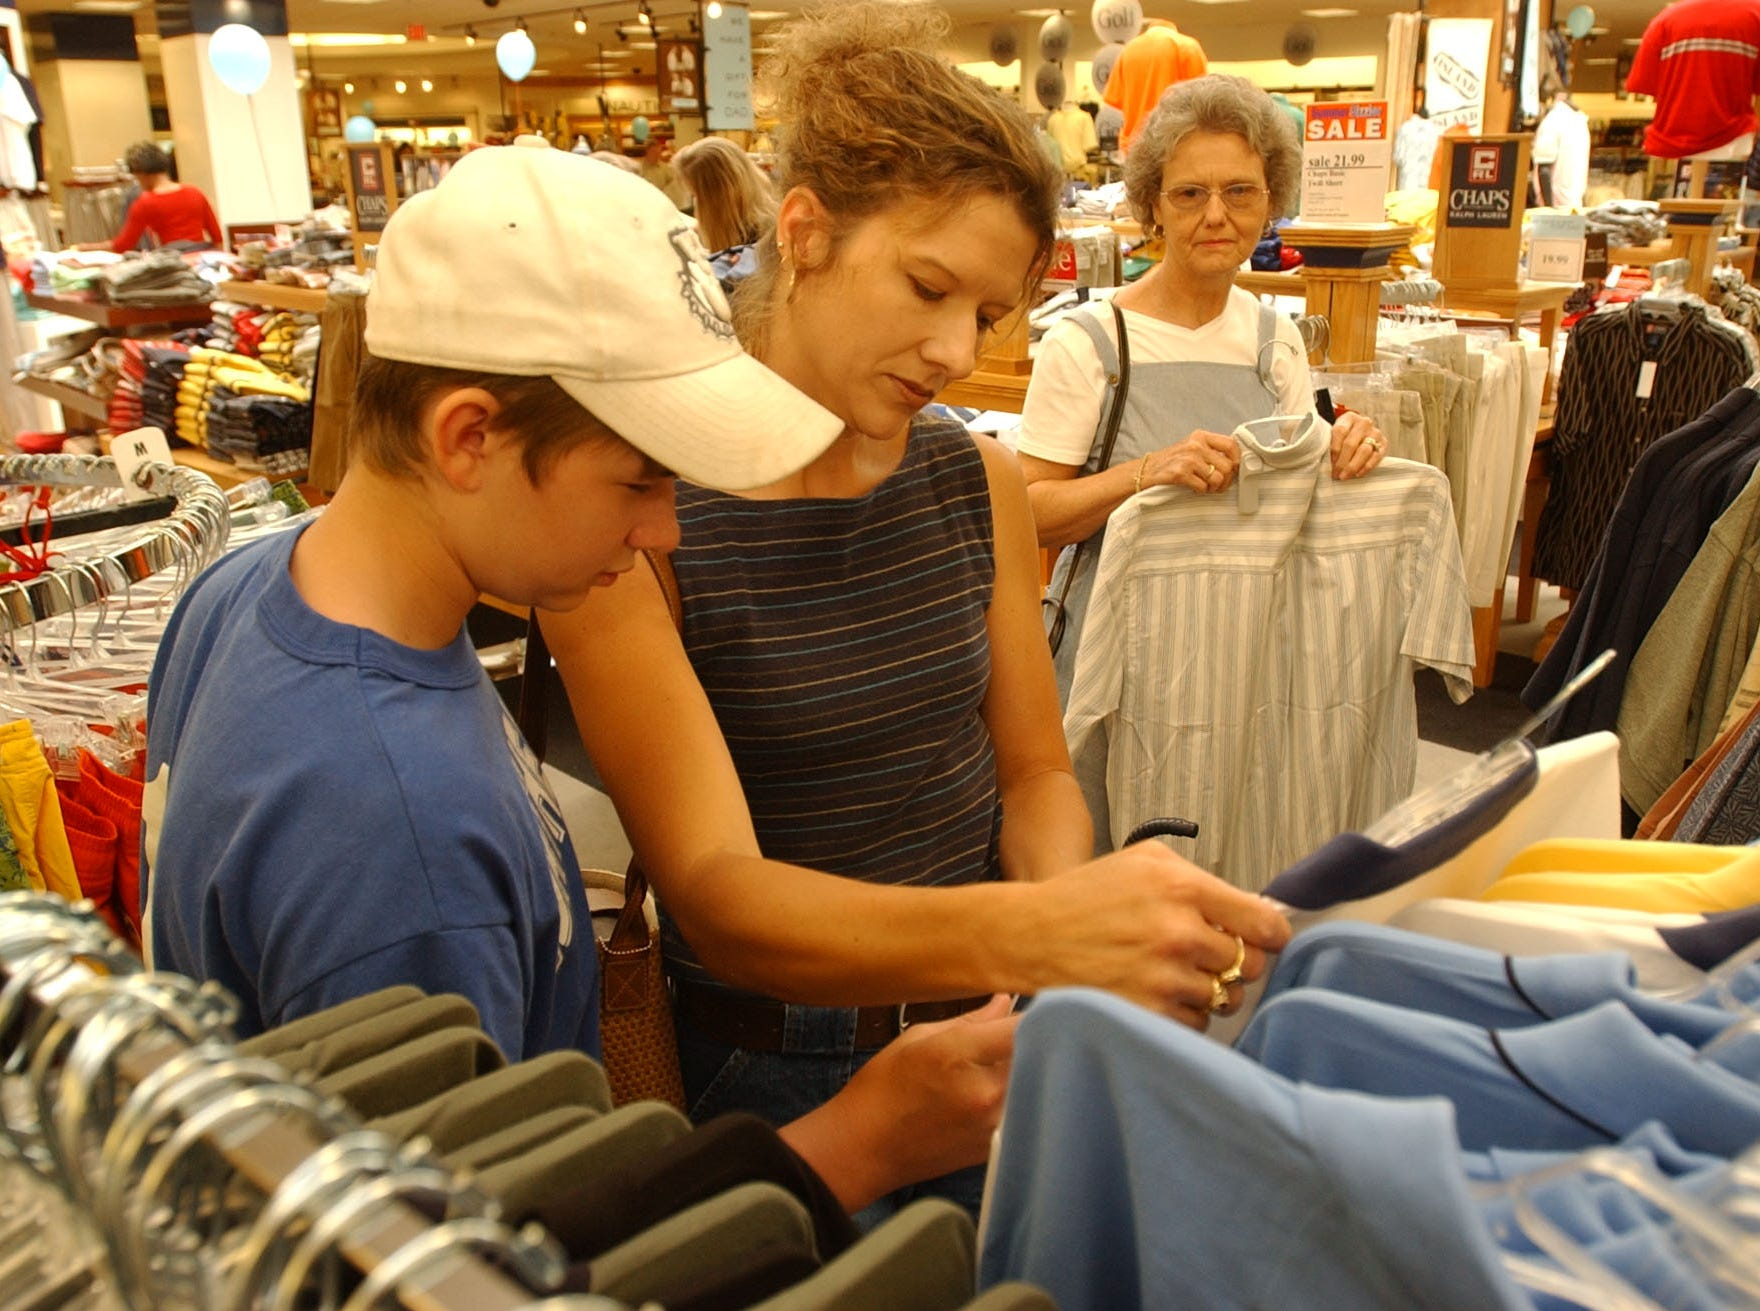 Jillisa Richards, center, helps her thirteen-year-old son Zac shop for a Father's Day present at Proffitt's in the West Town Mall Friday morning.  In the back is Richards' mother, Carolyn Colegrove also on their shopping trip.  (cq on Jillisa, Zac and Colegrove)   ASA200  2003 Image #DSC_8646.JPG